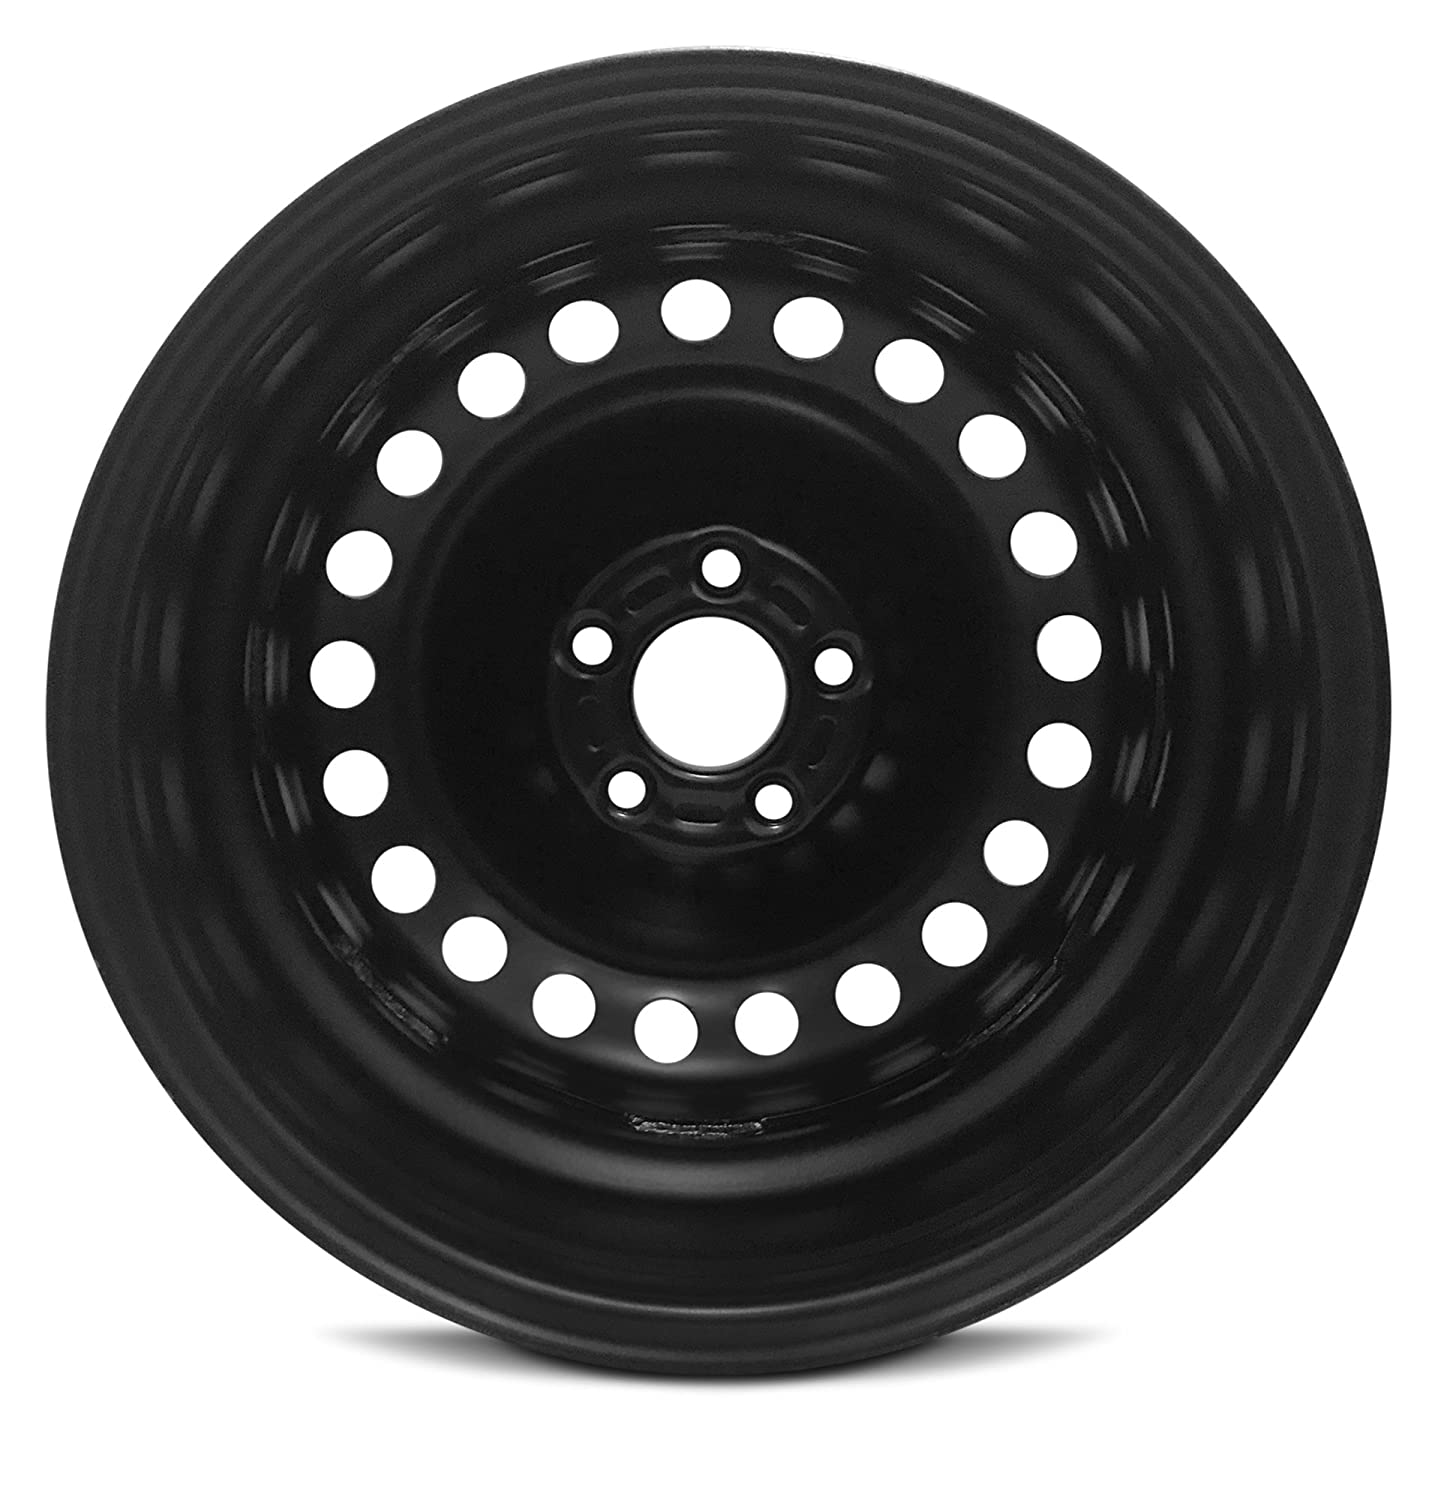 Road Ready Car Wheel For 2014-2018 Ford Transit Connect 16 Inch 5 Lug Black Steel Rim Fits R16 Tire Exact OEM Replacement Full-Size Spare